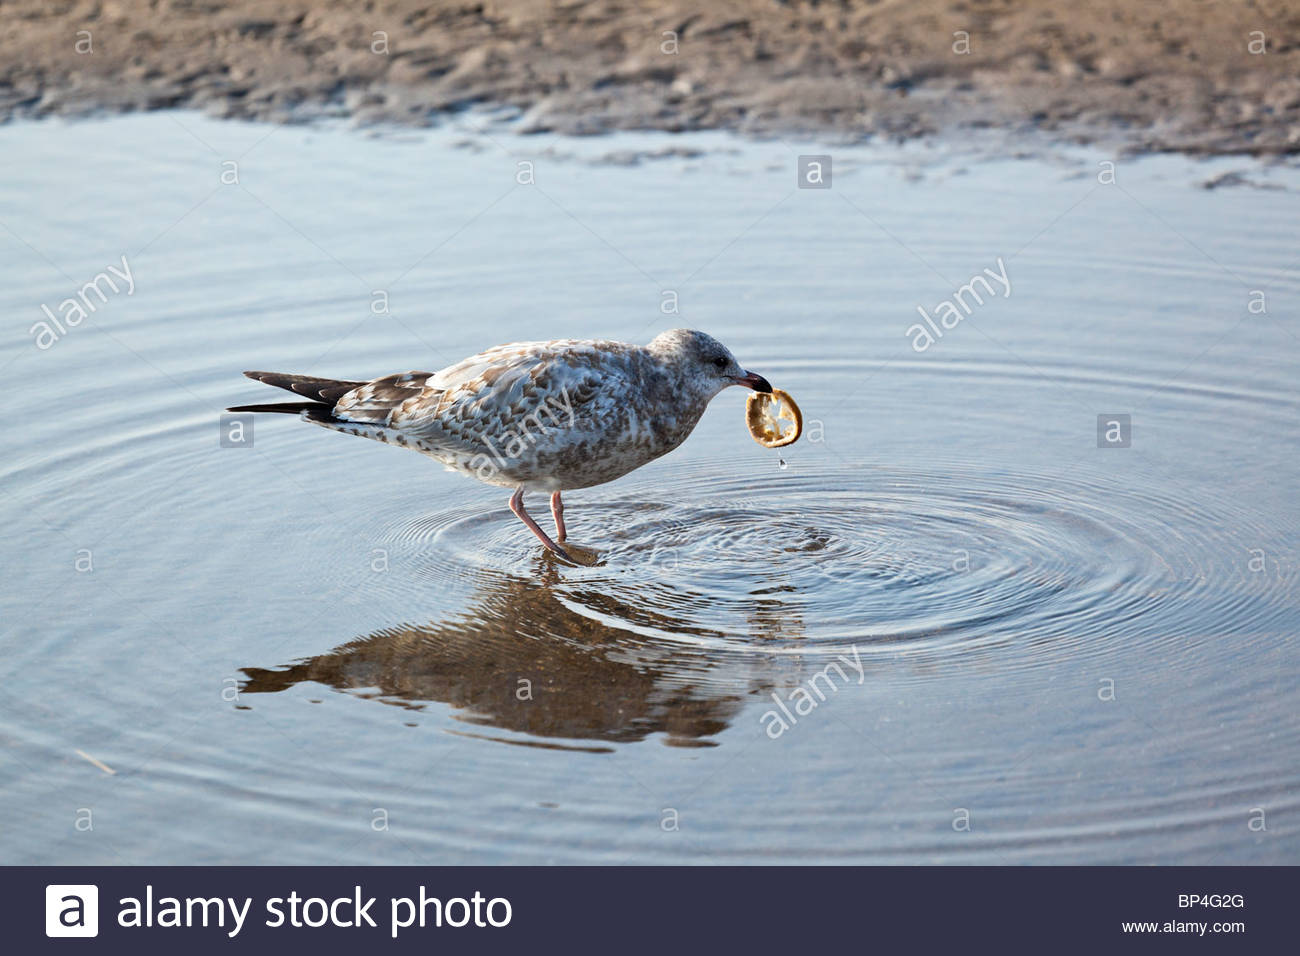 Gull trying to eat a condom in Rouge Park an urban wilderness in Toronto Ontario Canada. - Stock Image